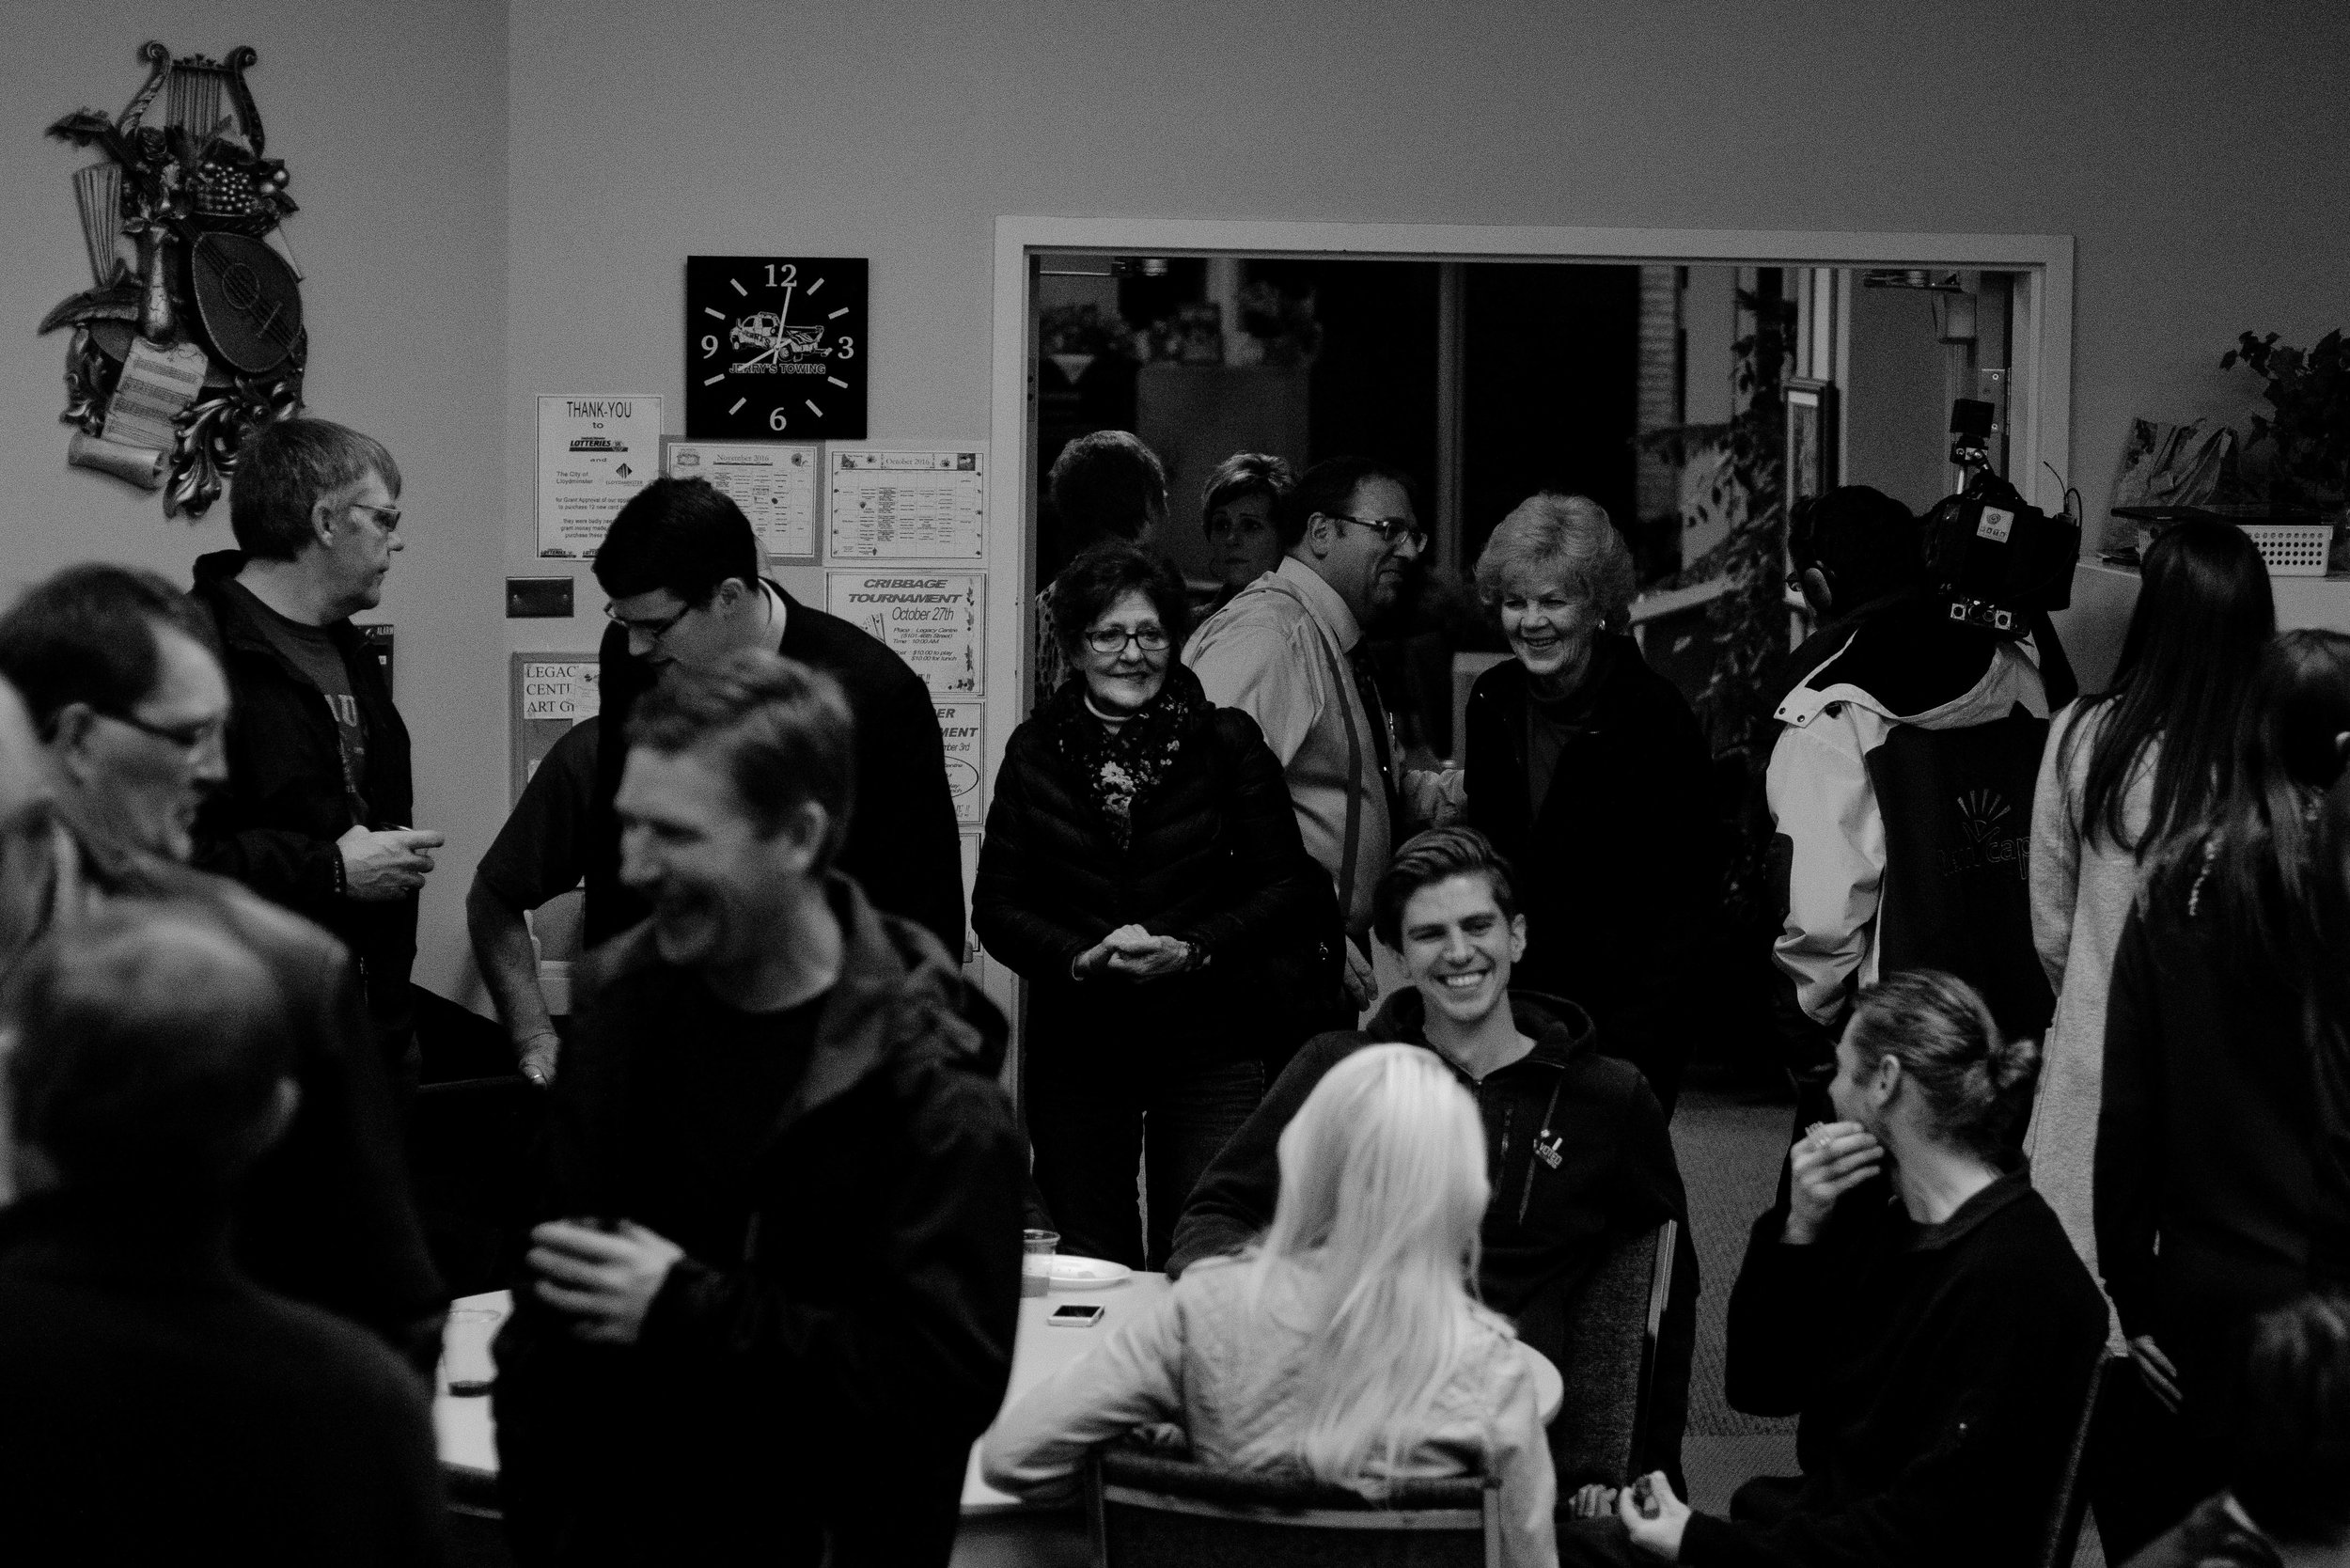 Once voting had nearly wrapped up, I left the radio station to head down to the Aalber's election gathering. This was being at the Legacy Centre, a community centre conveniently close to City Hall. Even before the results of the vote were known, there were a lot of happy people inside.